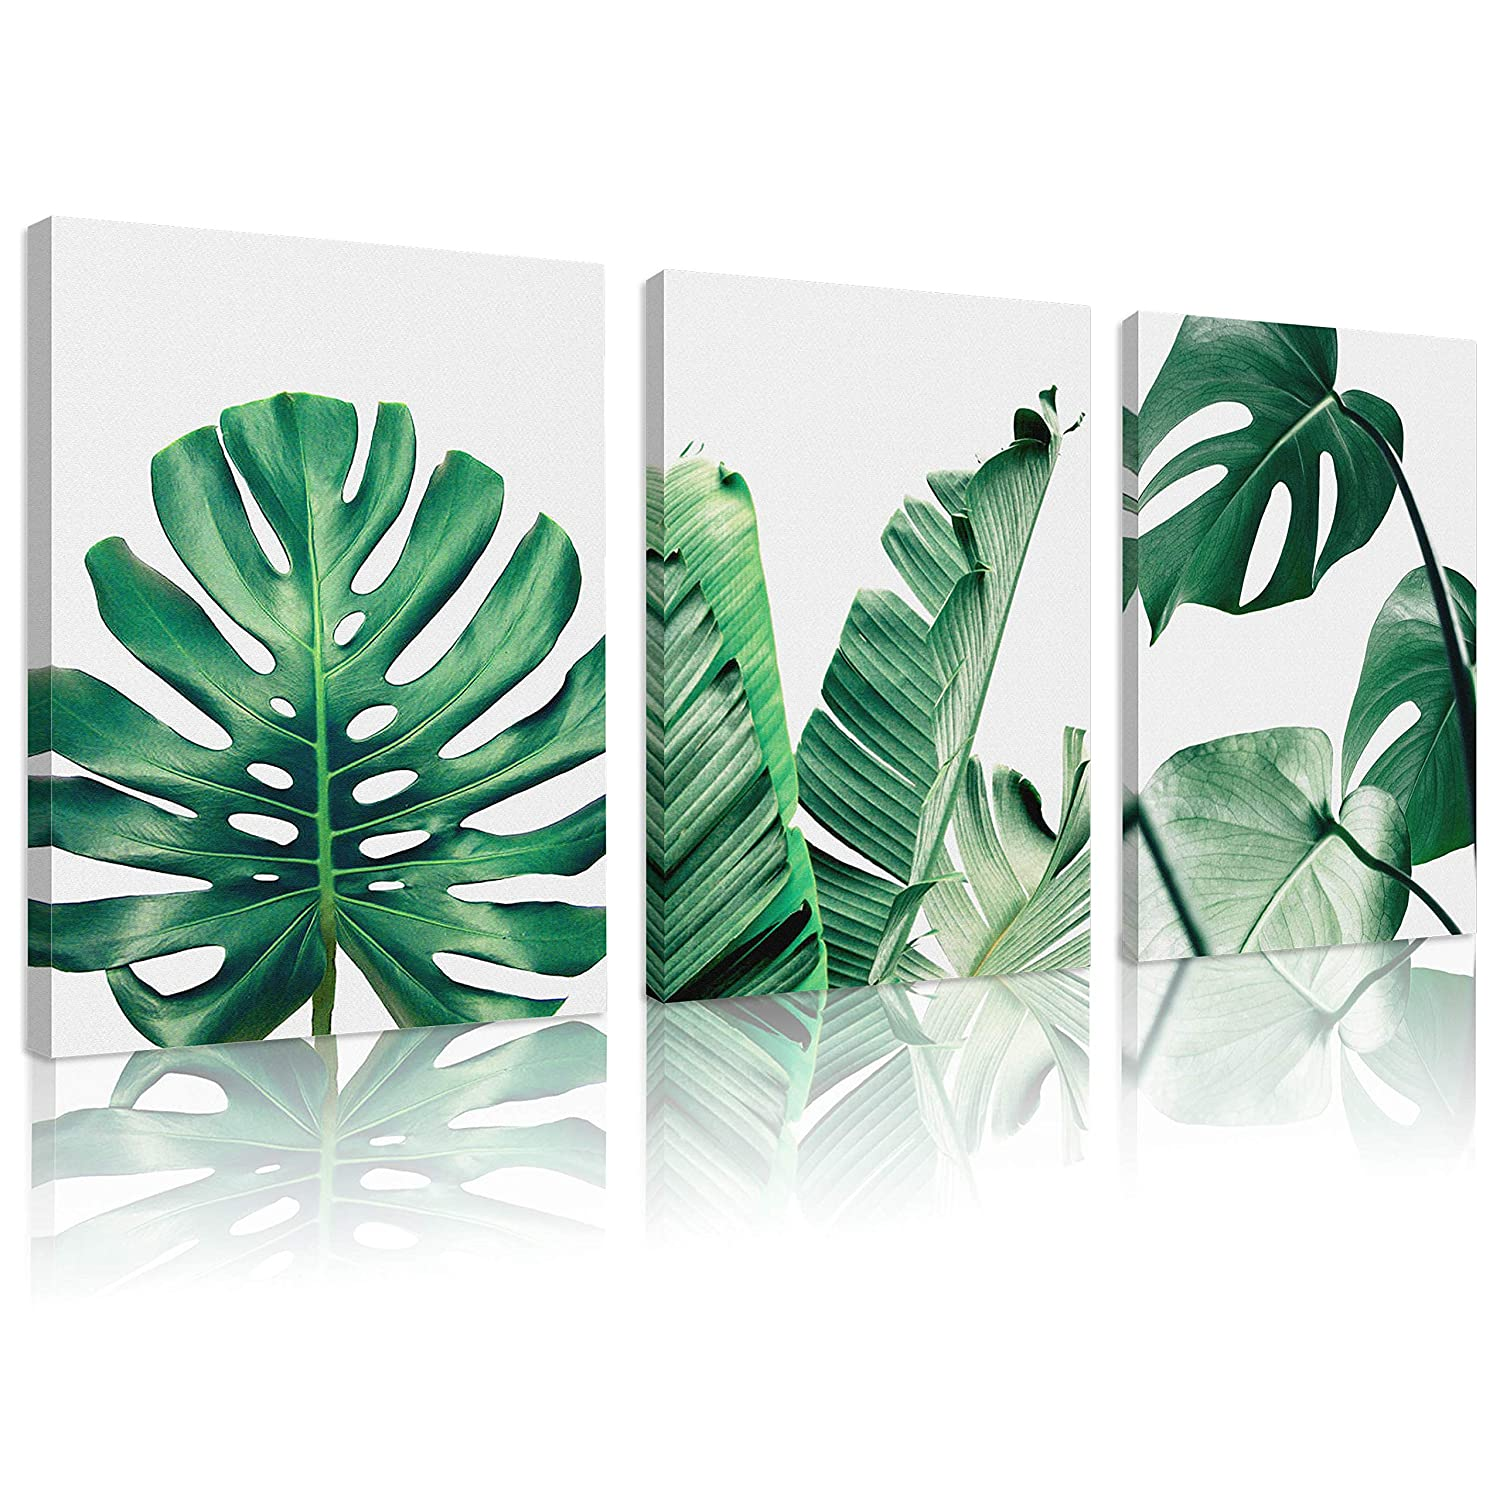 Natural art Simple Green Leaves Canvas Art Tropical Plants Artwork Minimalist Watercolor Painting Wall Decor for Bathroom Living Room Bedroom Kitchen Canvas Prints 12x16inchesx3pcs